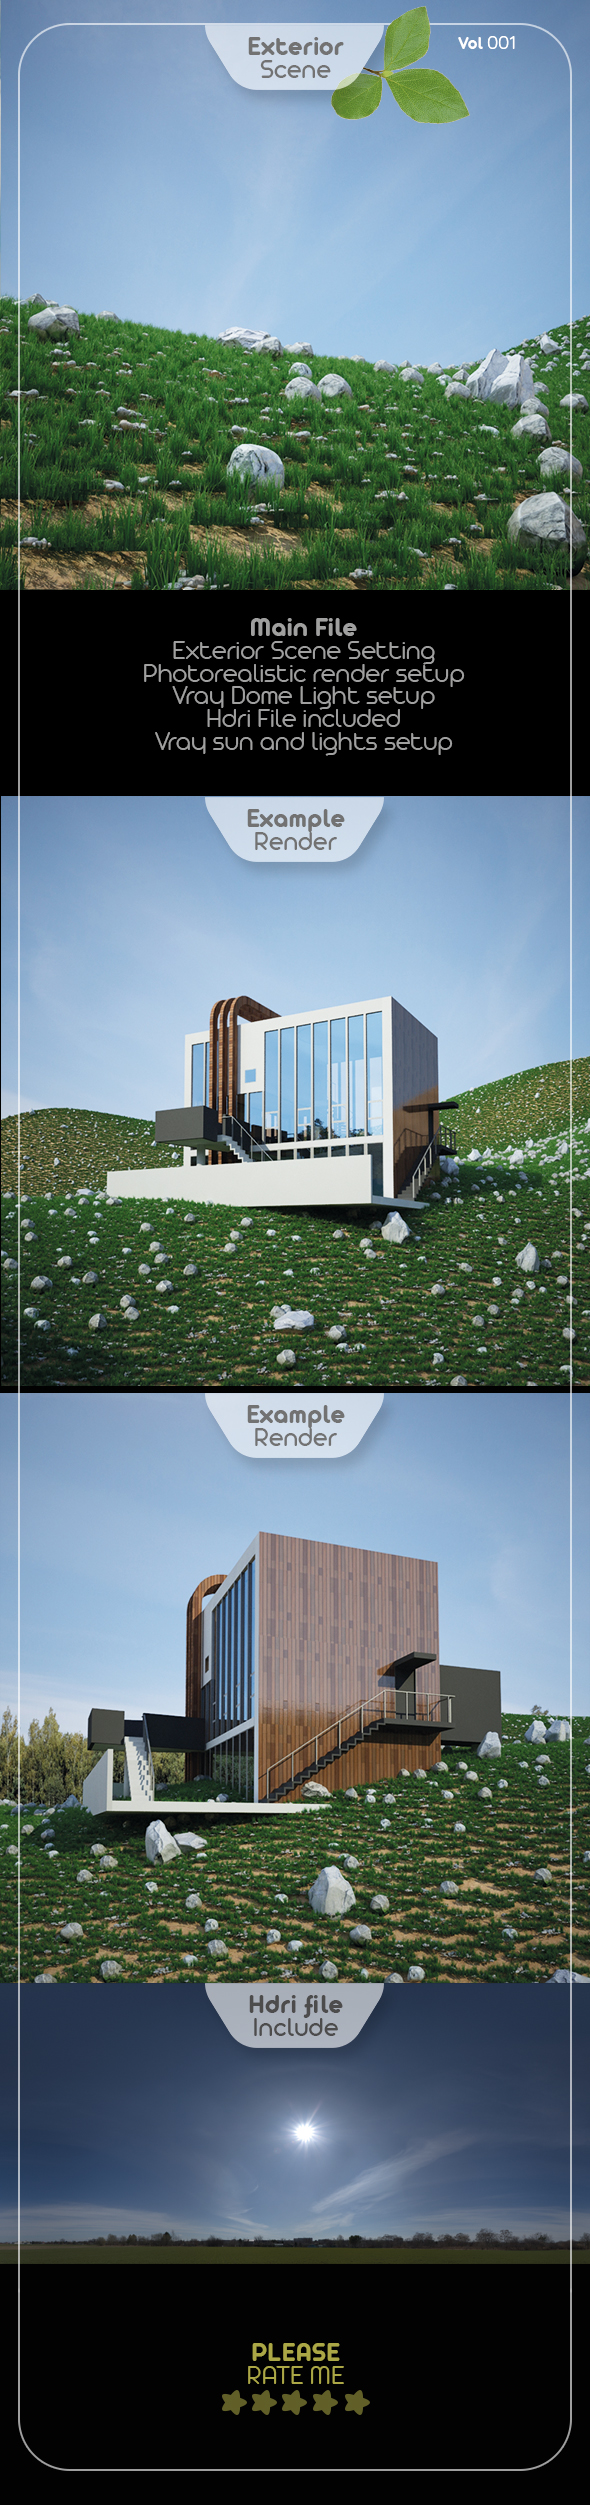 Exterior Render Scene Set 001 - 3DOcean Item for Sale